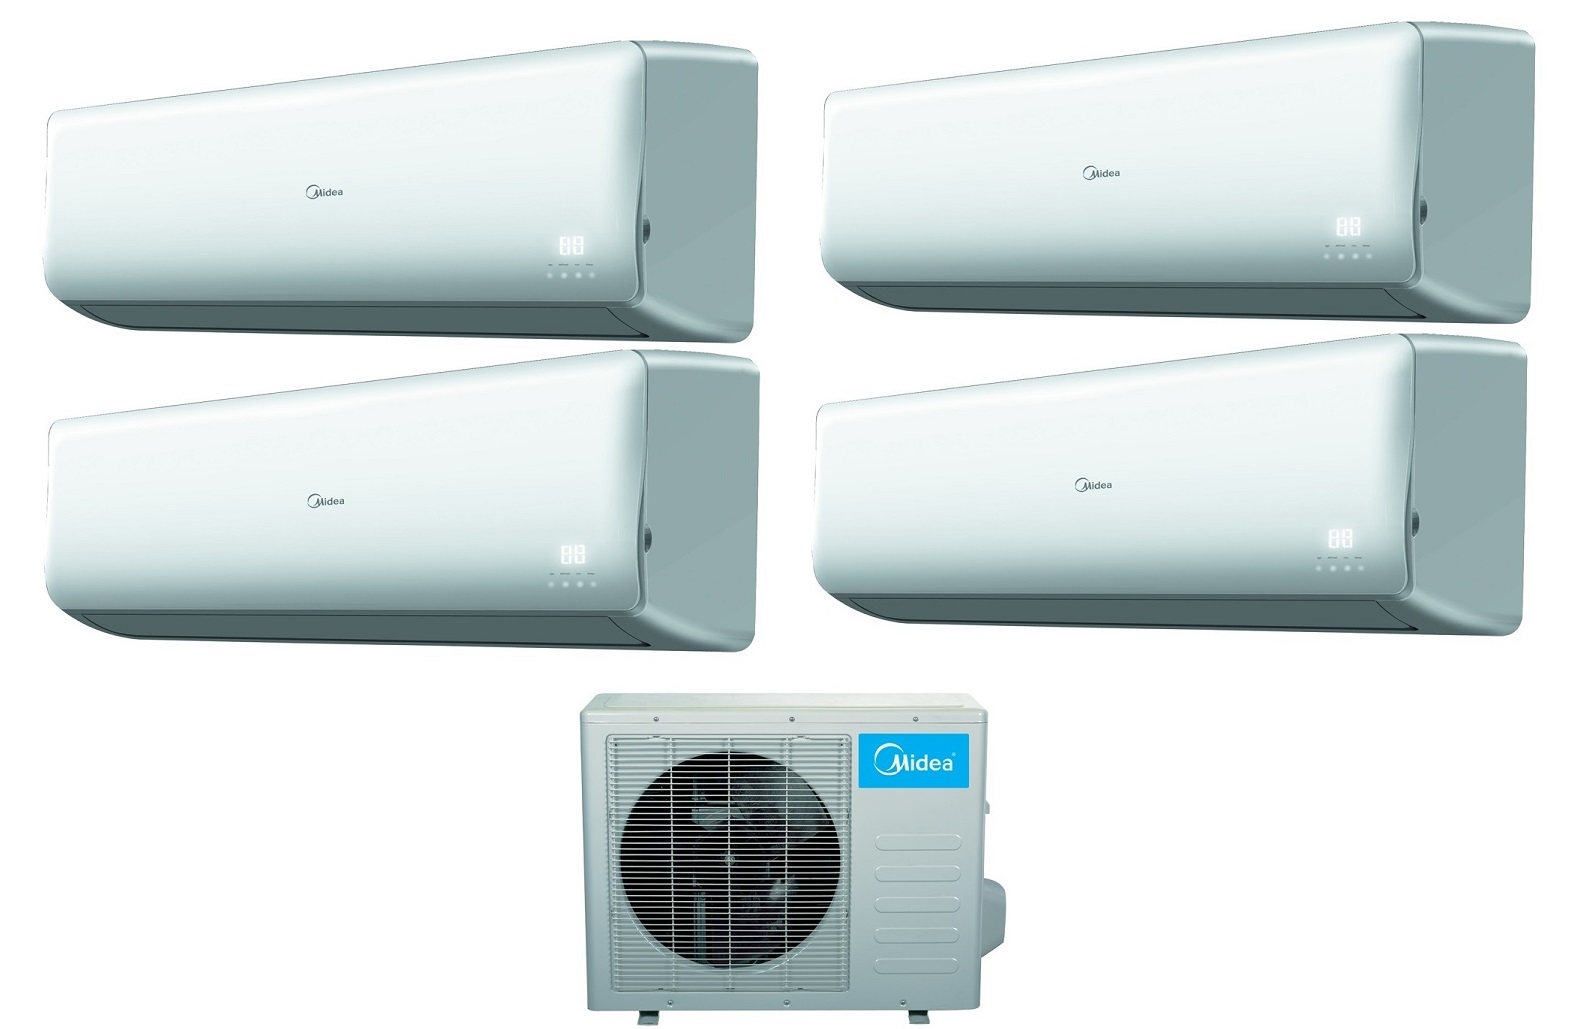 Midea 16 Seer 4 Room 4x12000btu Quad Zone Mini Split Heat Pump AC #0190CA